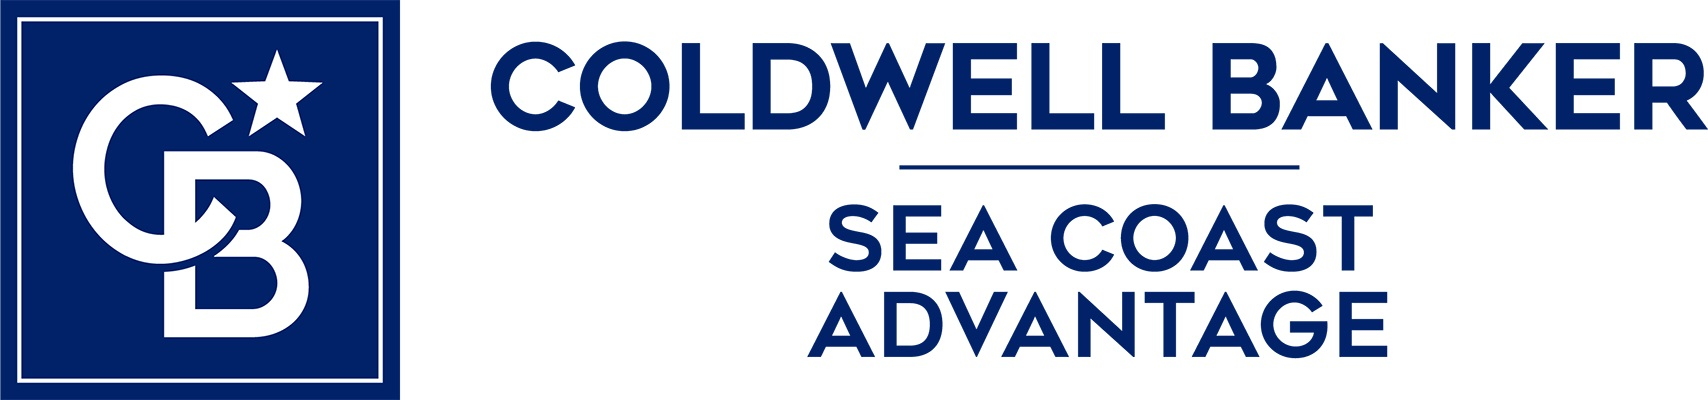 Ginger Harper Real Estate Group - Coldwell Banker Sea Coast Advantage Logo